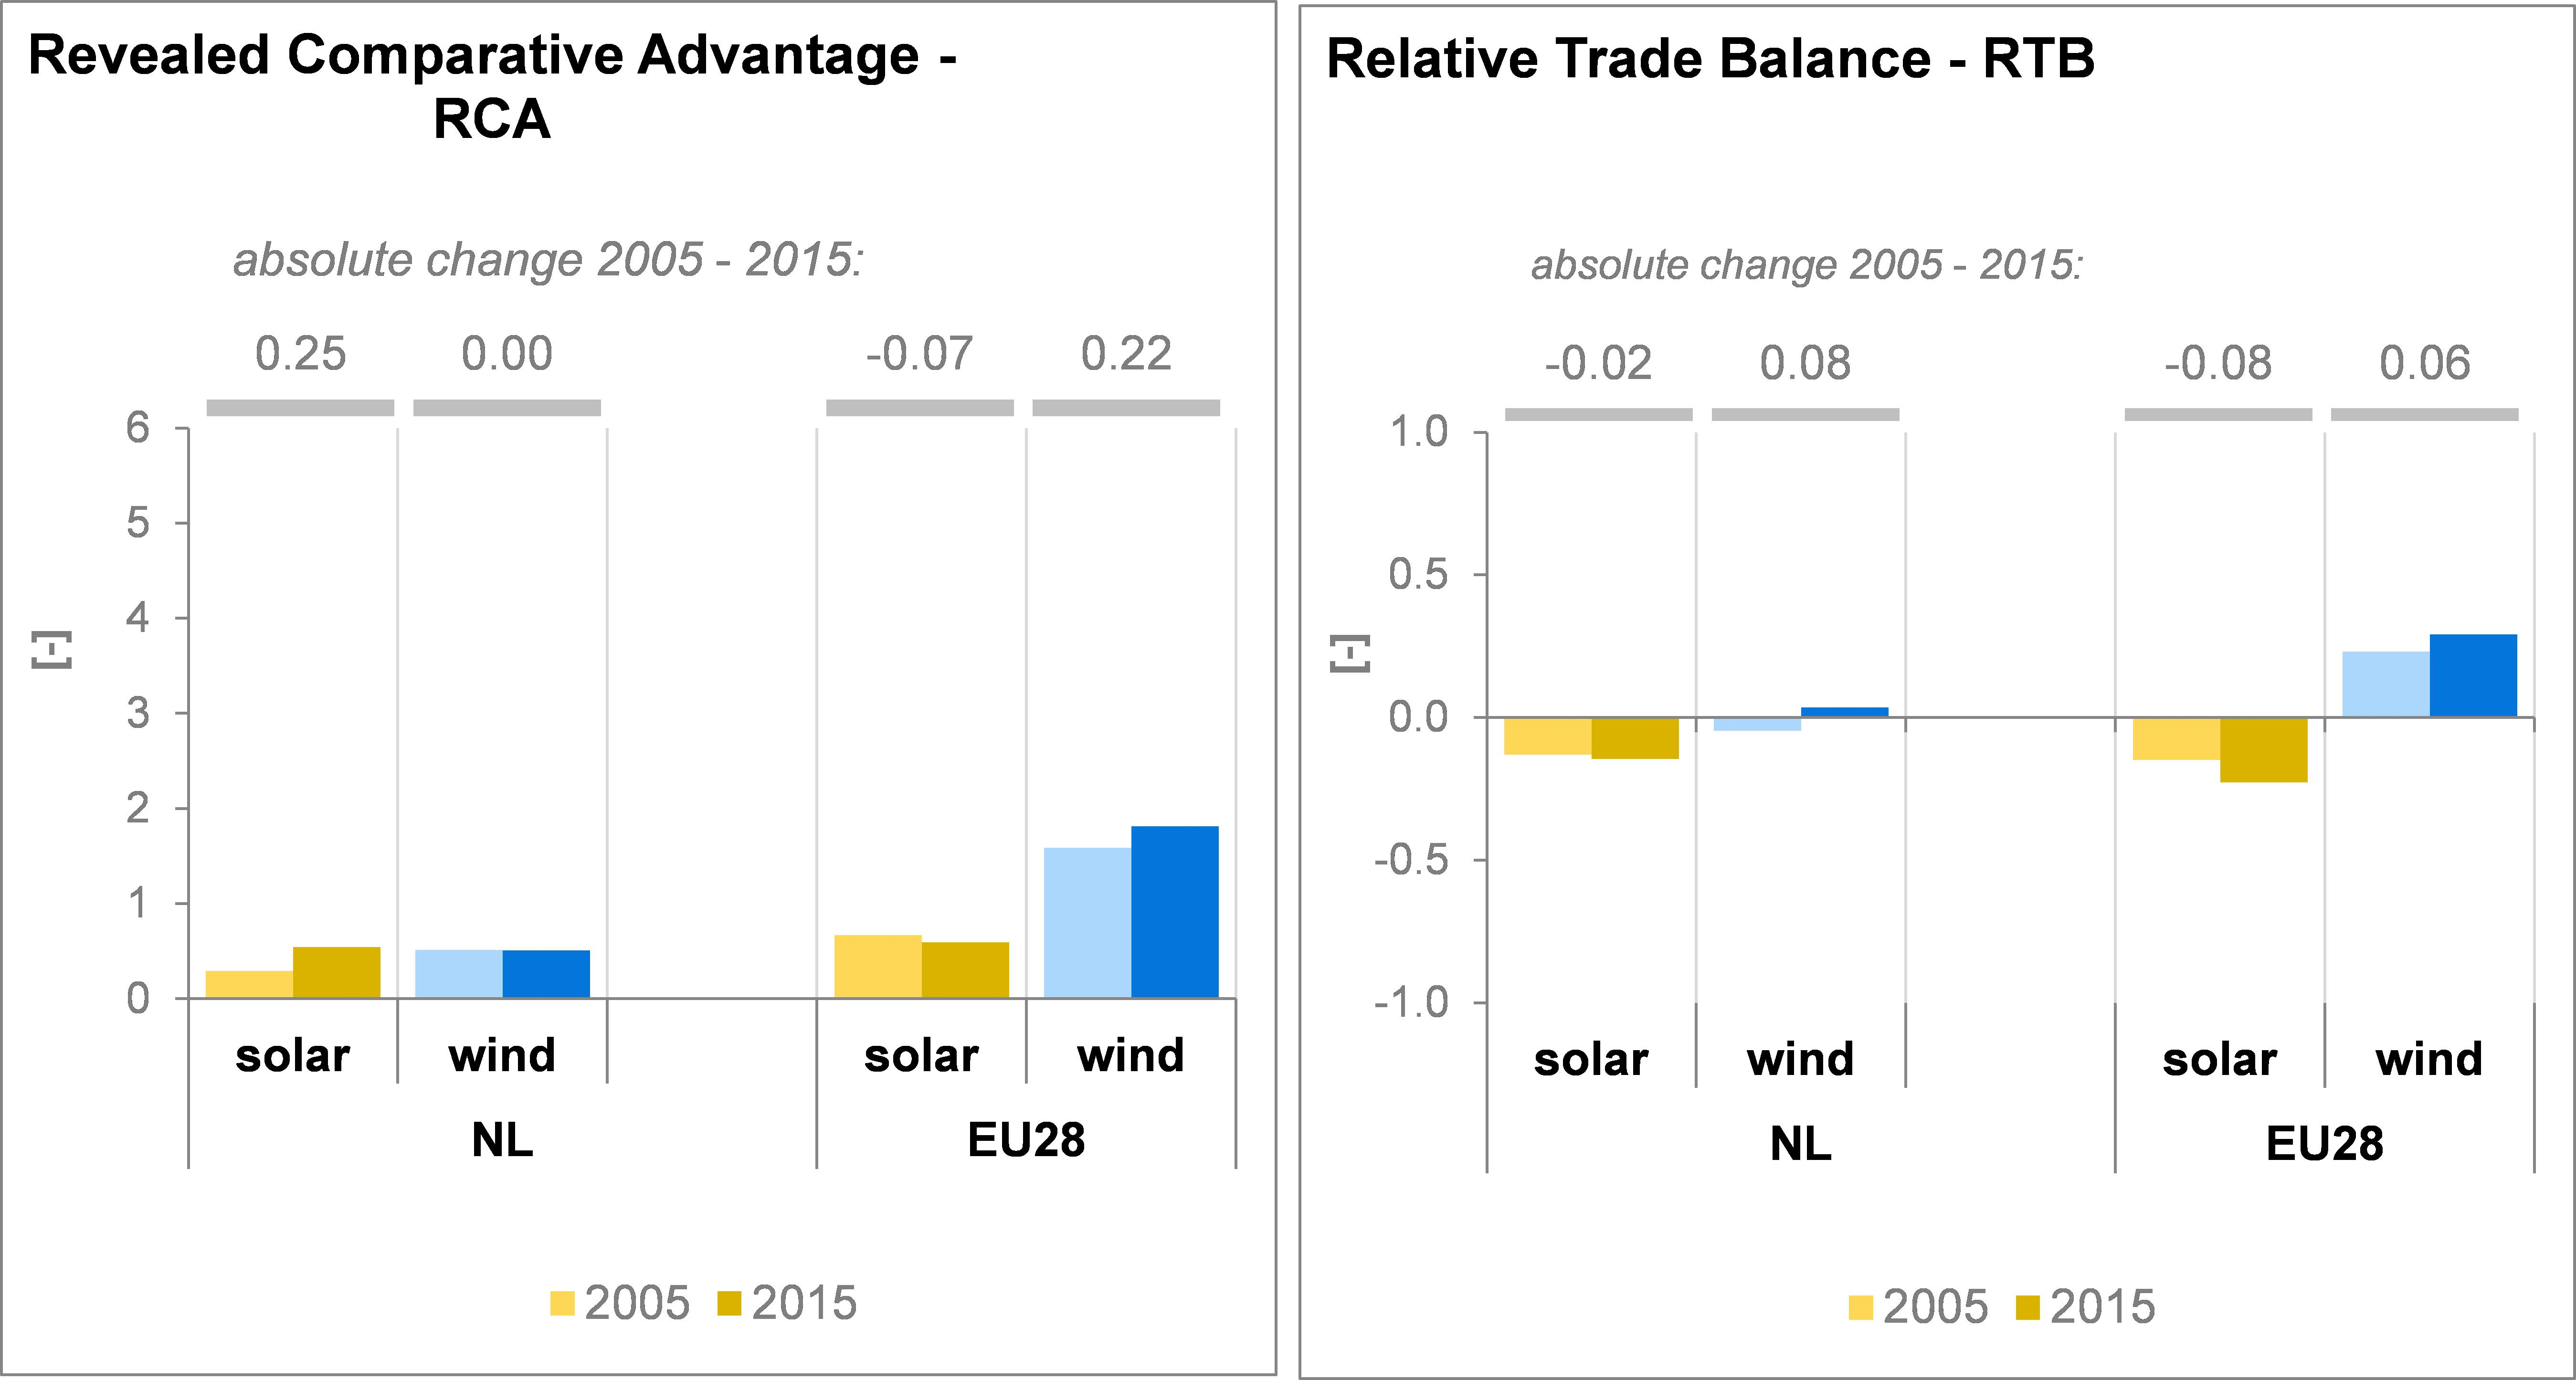 balance trade research paper Gdp growth and trade balance 17 12 7 2 -3 -8 -13 -18 gdp growth trade balance source: oecd it can be seen from the above figure that both gdp growth and trade balance have been fluctuating a lot in mexico for the period of 1980-2008.